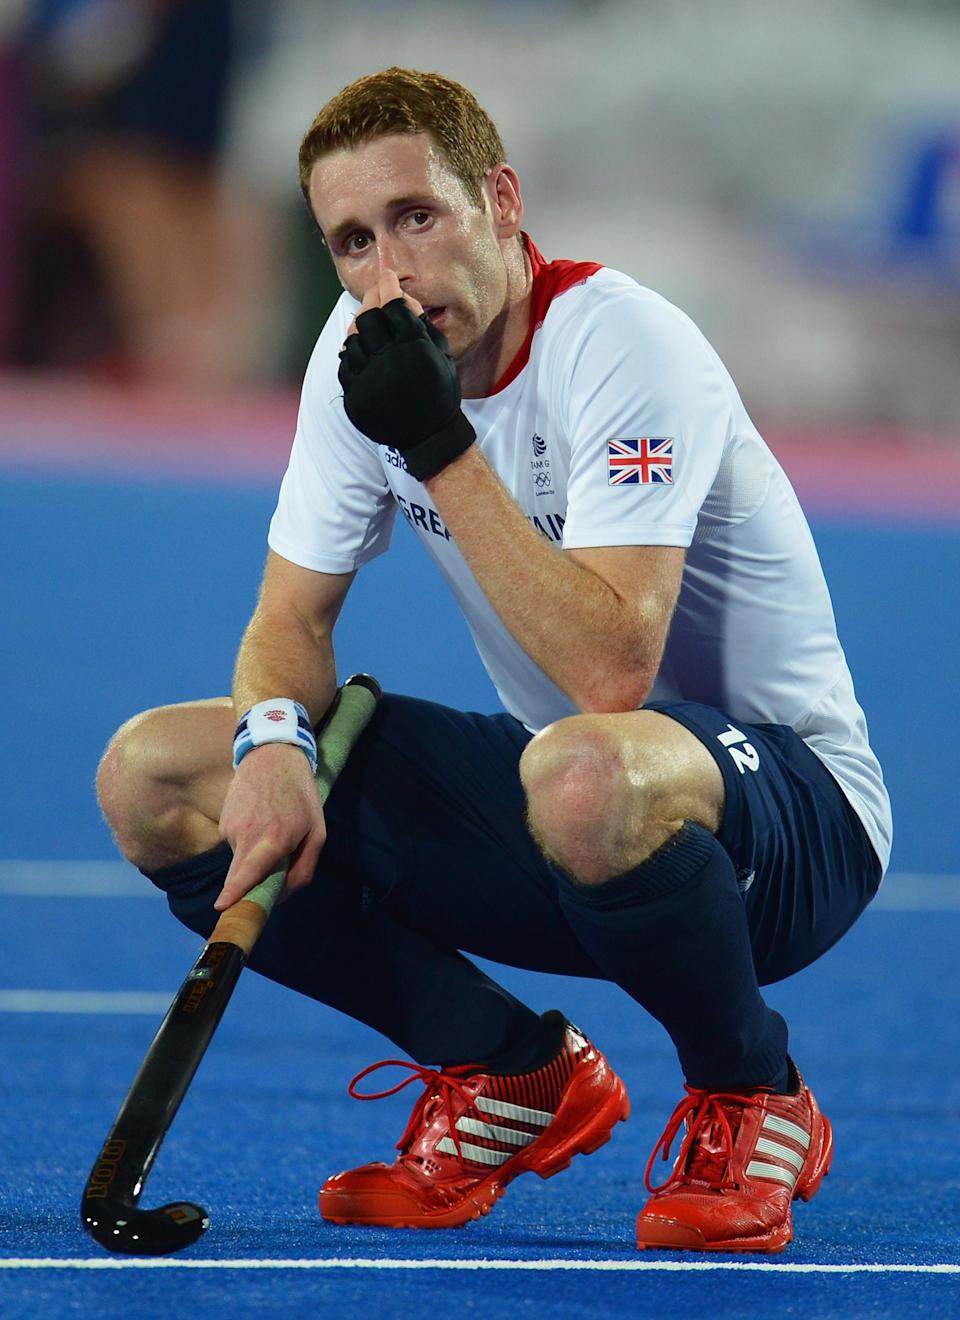 LONDON, ENGLAND - AUGUST 09: Jonathan Clarke of Great Britain looks dejected at the end of the Men's Hockey Semi Final match between Netherlands and Great Britain on Day 13 of the London 2012 Olympic Games at Riverbank Arena Hockey Centre on August 9, 2012 in London, England. (Photo by Lars Baron/Getty Images)